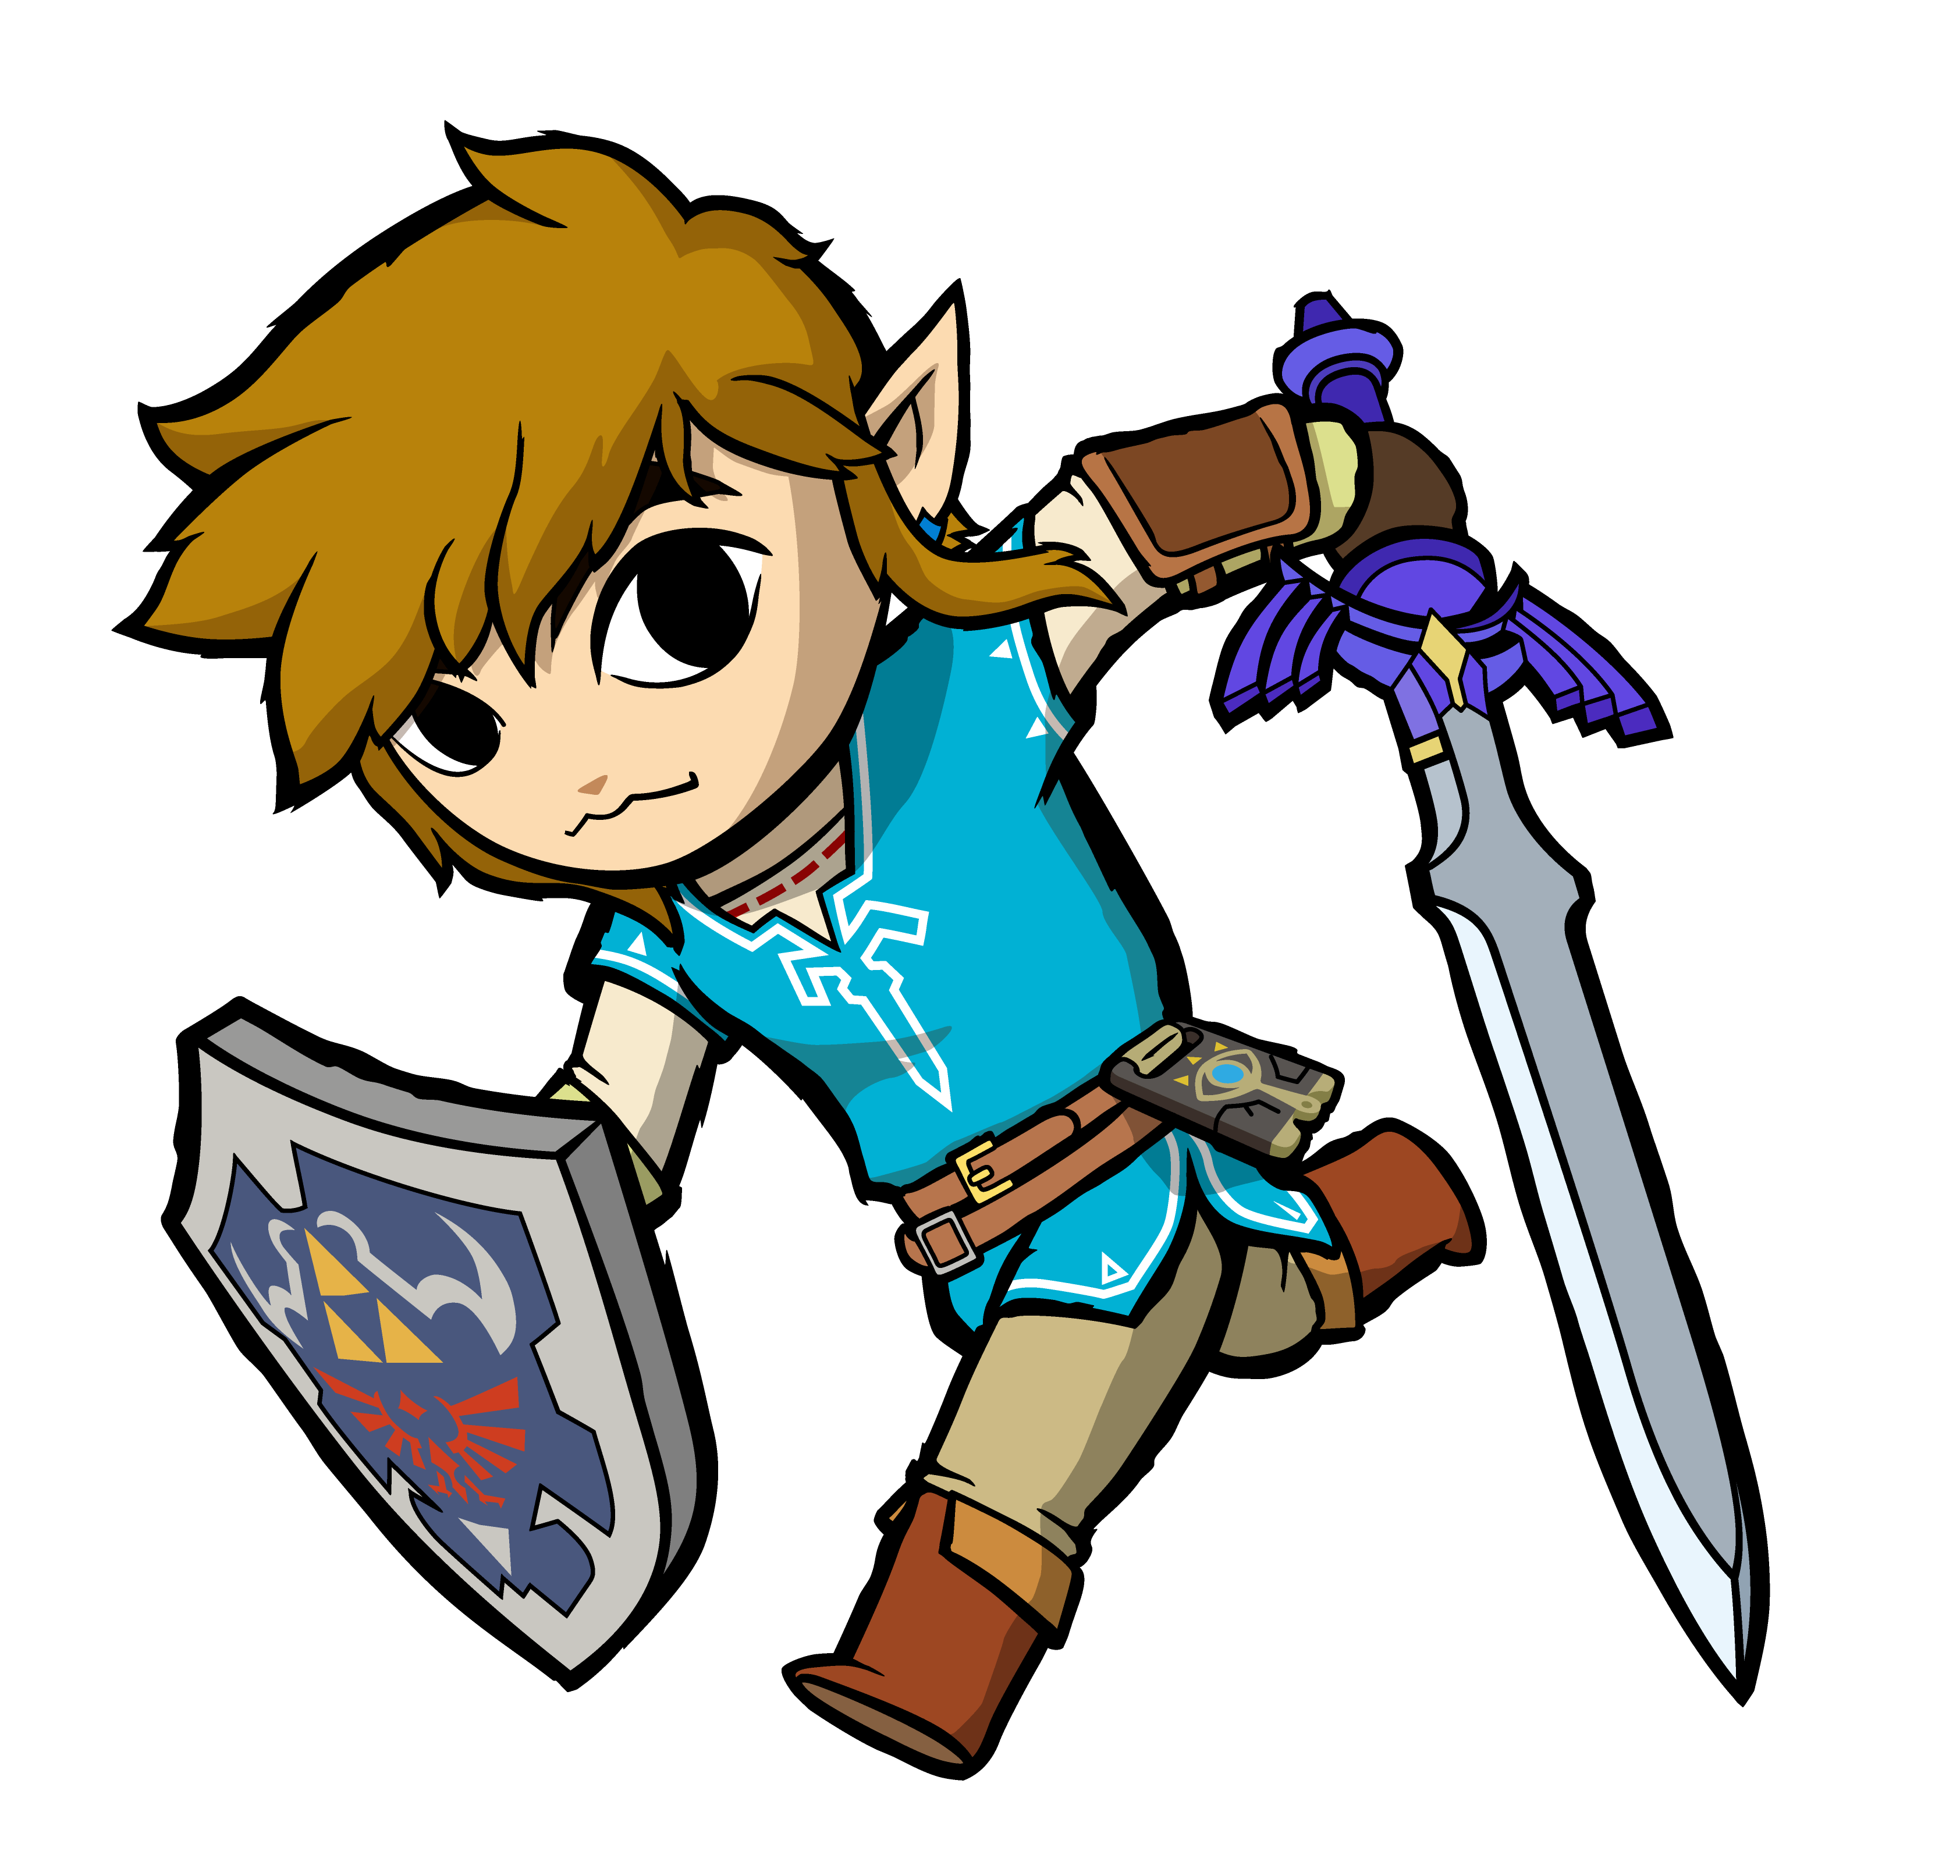 Link breath of the wild clipart clip art freeuse download OC ART] I drew Breath of the Wild link in the toon link ... clip art freeuse download